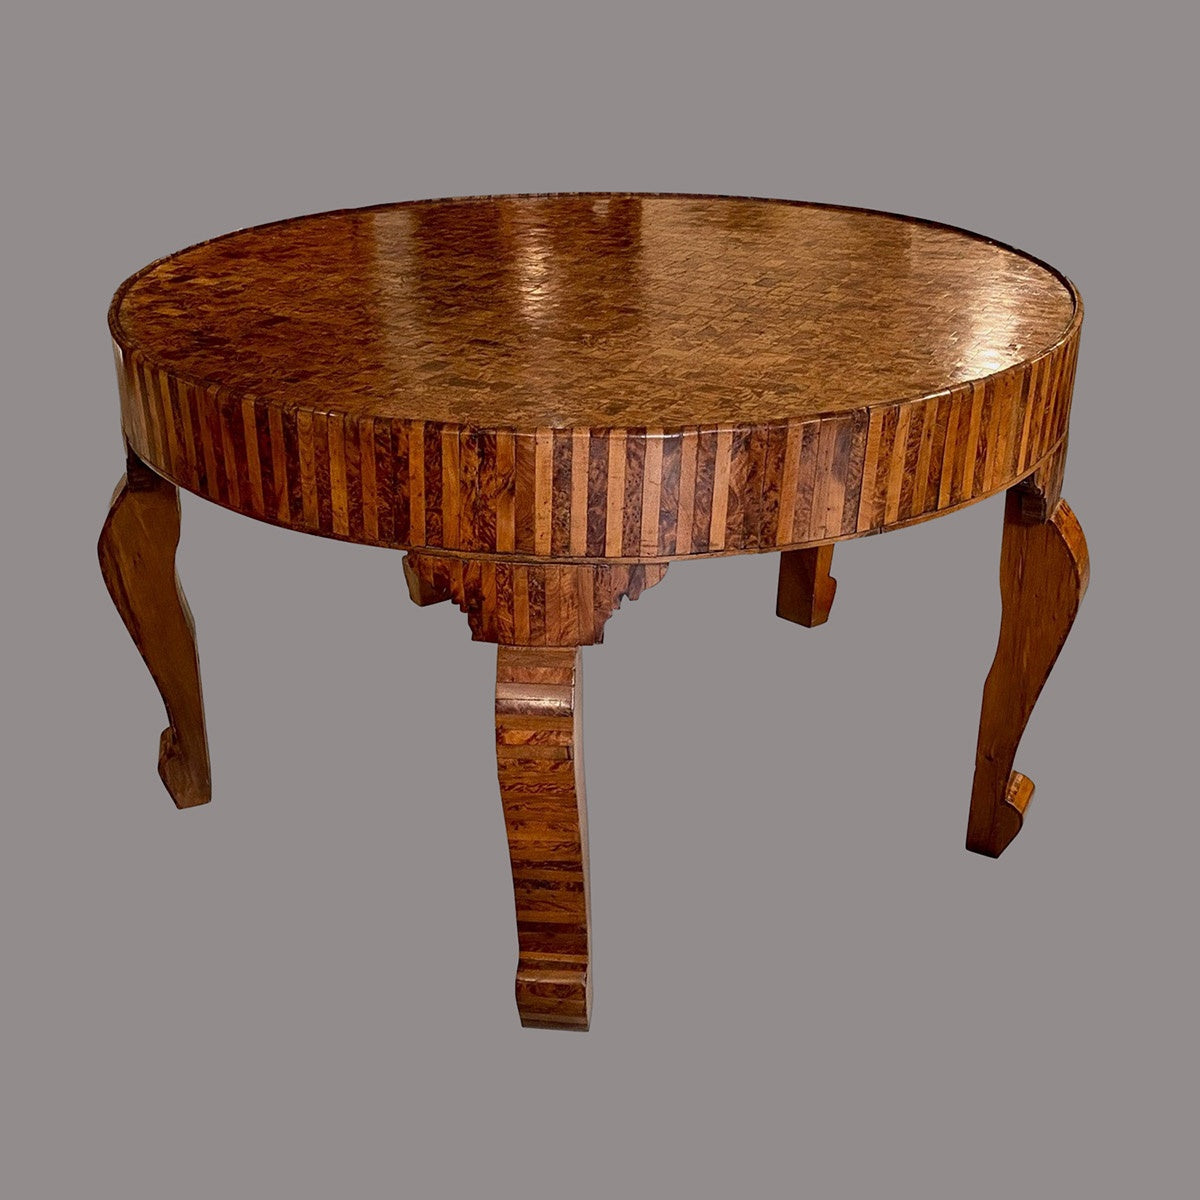 An Impressive Parquetry Thuya Wood Centre Table